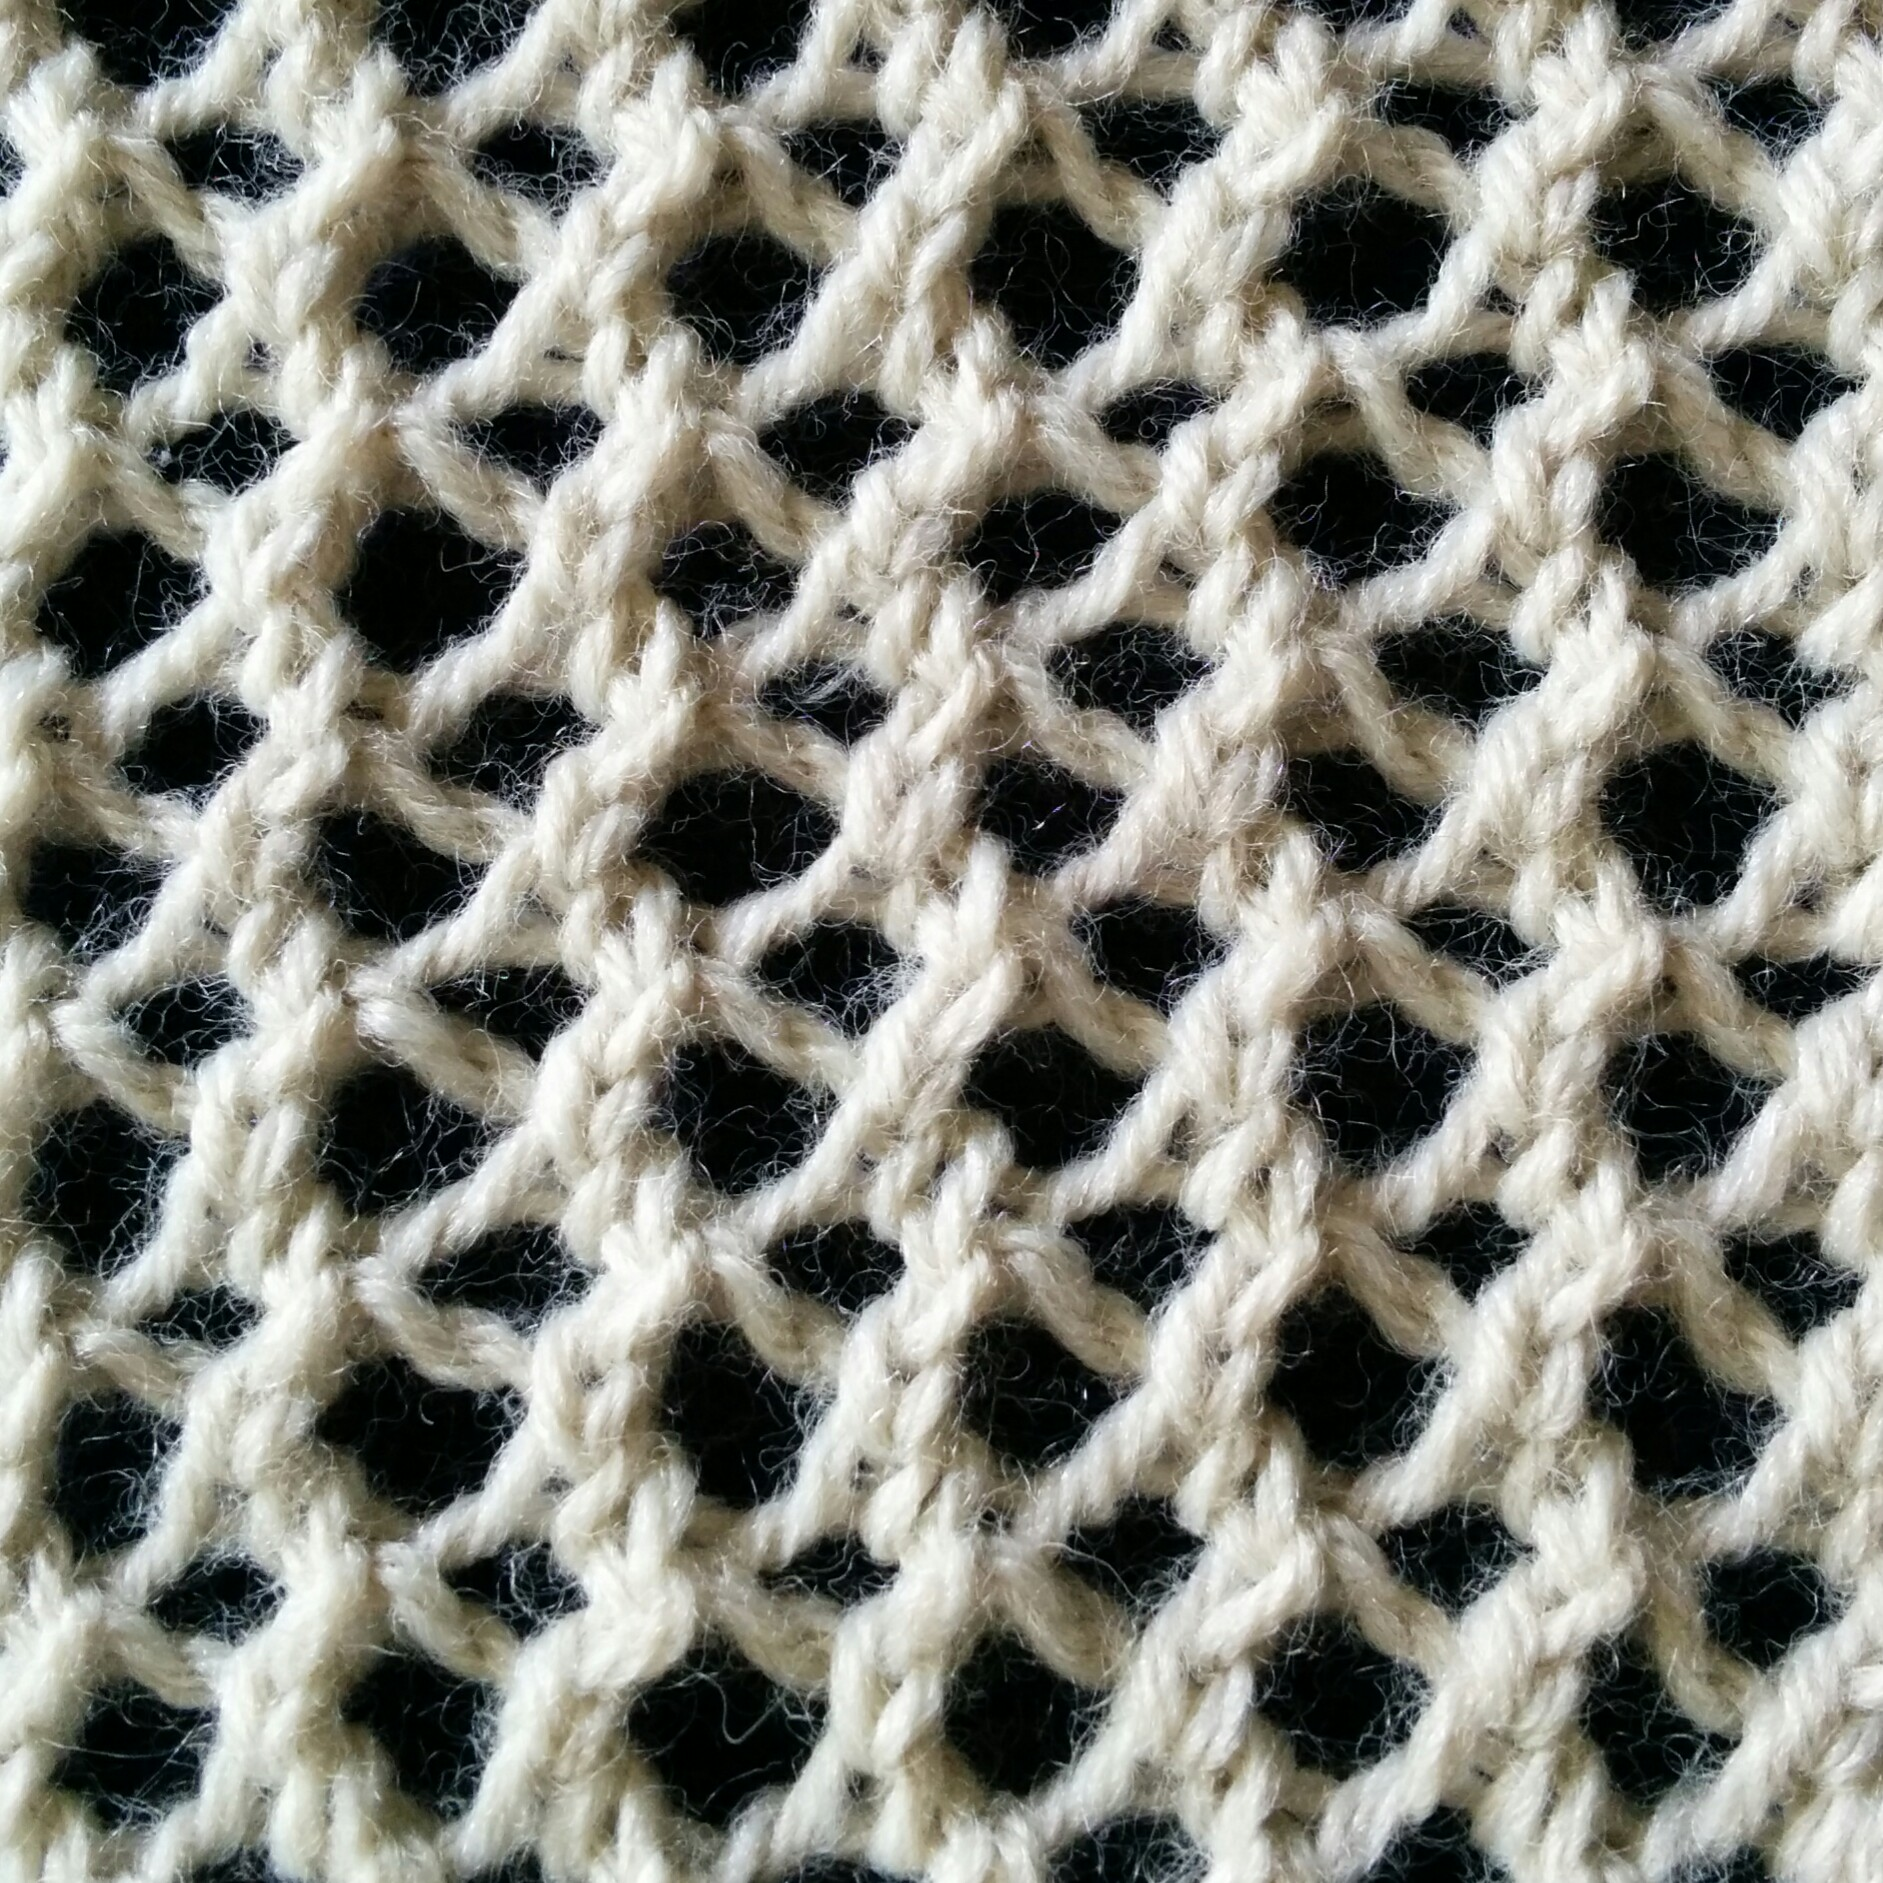 Knit Lace Stitches Choice Image - handicraft ideas home decorating